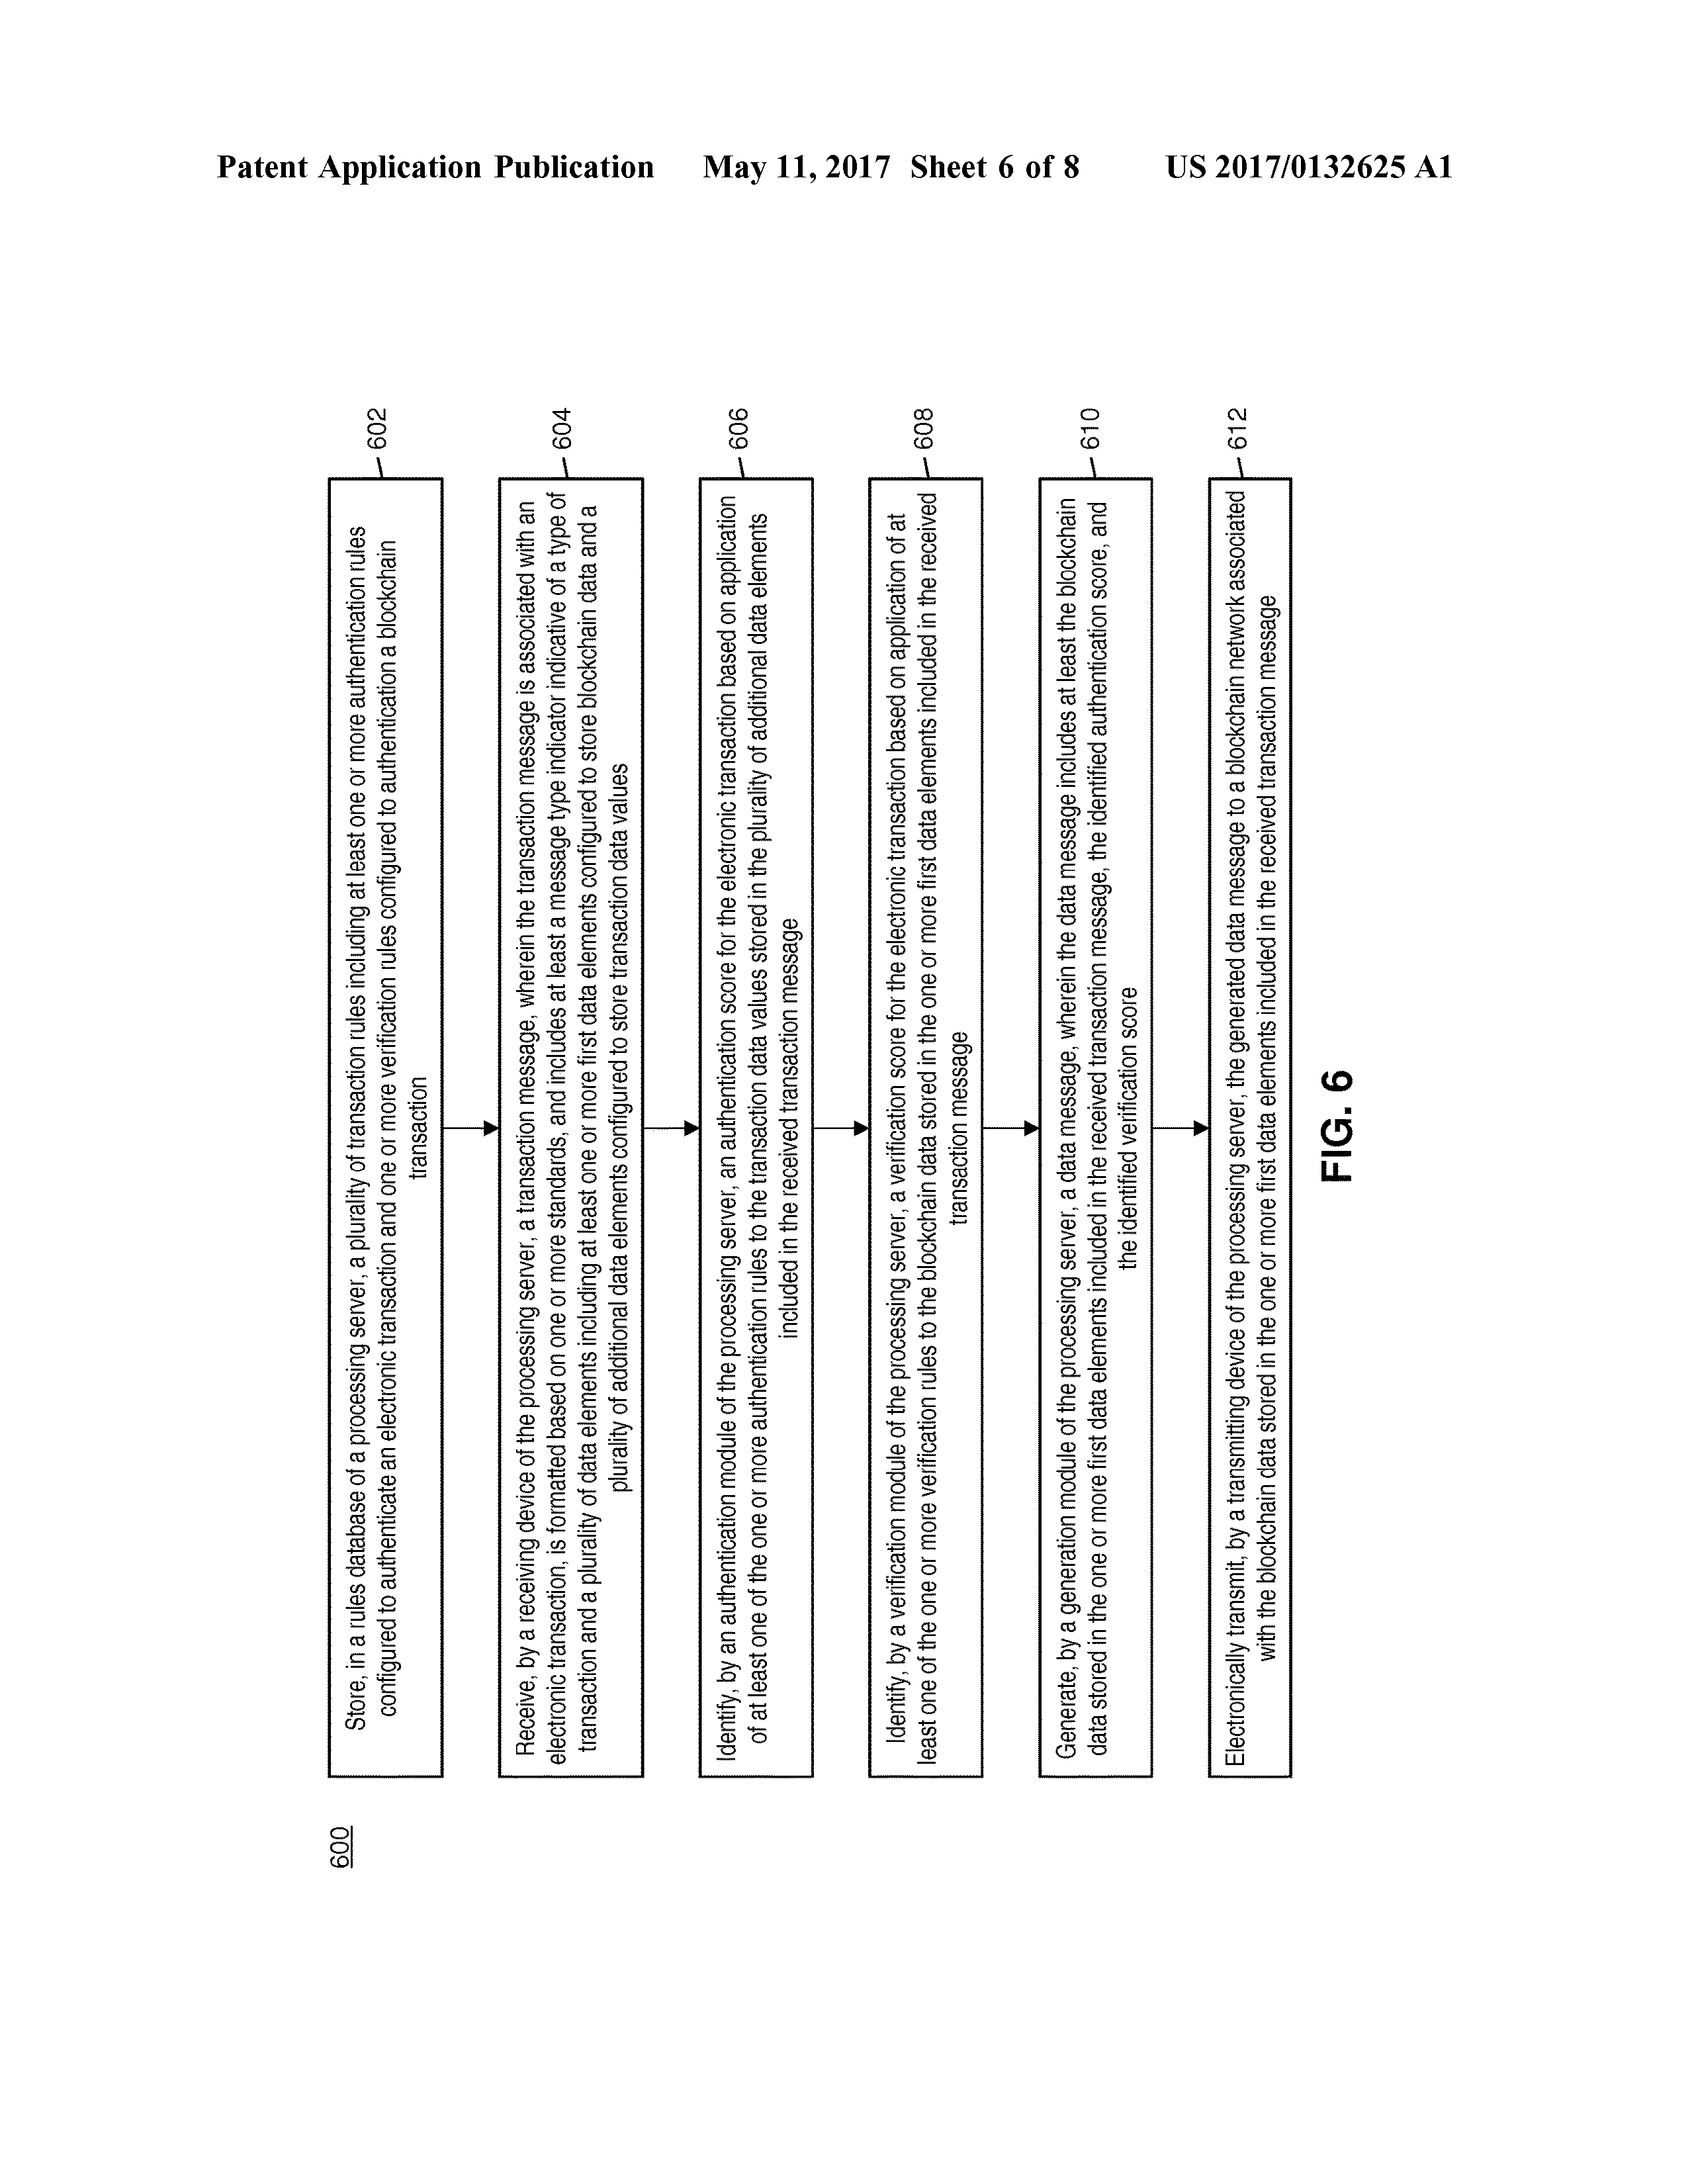 US 2017/0132625 A1 - Method And System For Use Of A